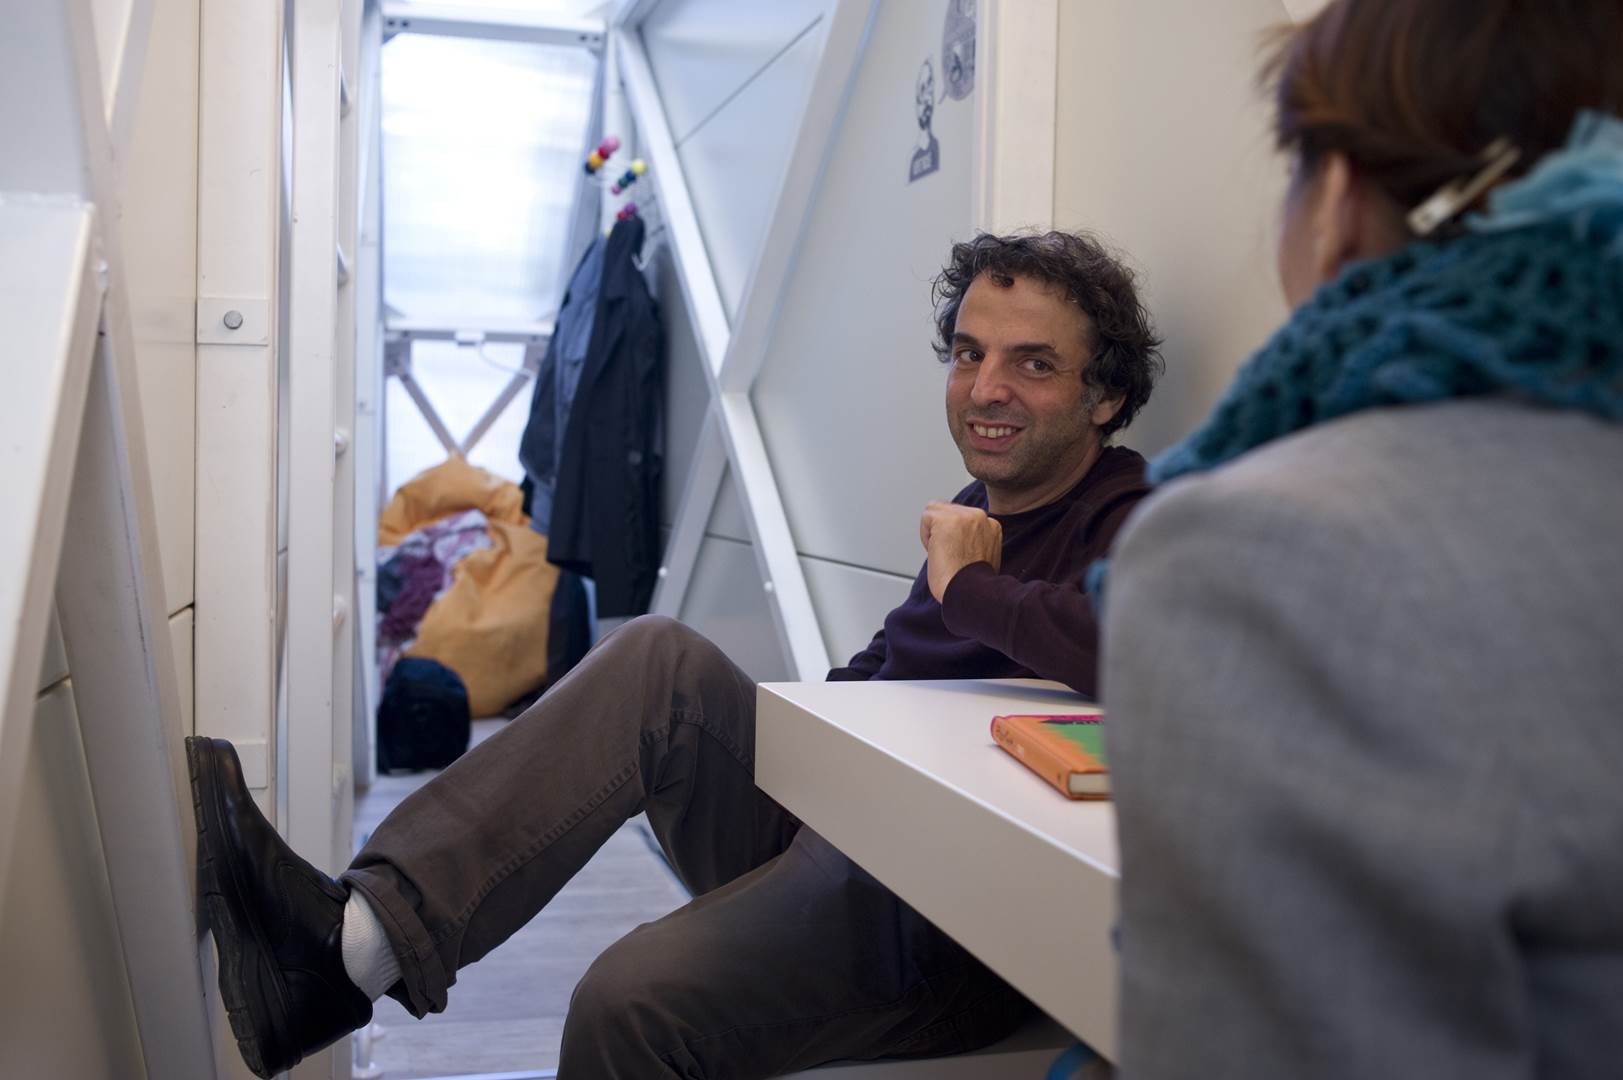 08. Etgar Keret in the Keret House, by Bartek Warzecha, © Polish Modern Art Foundation (Copy)